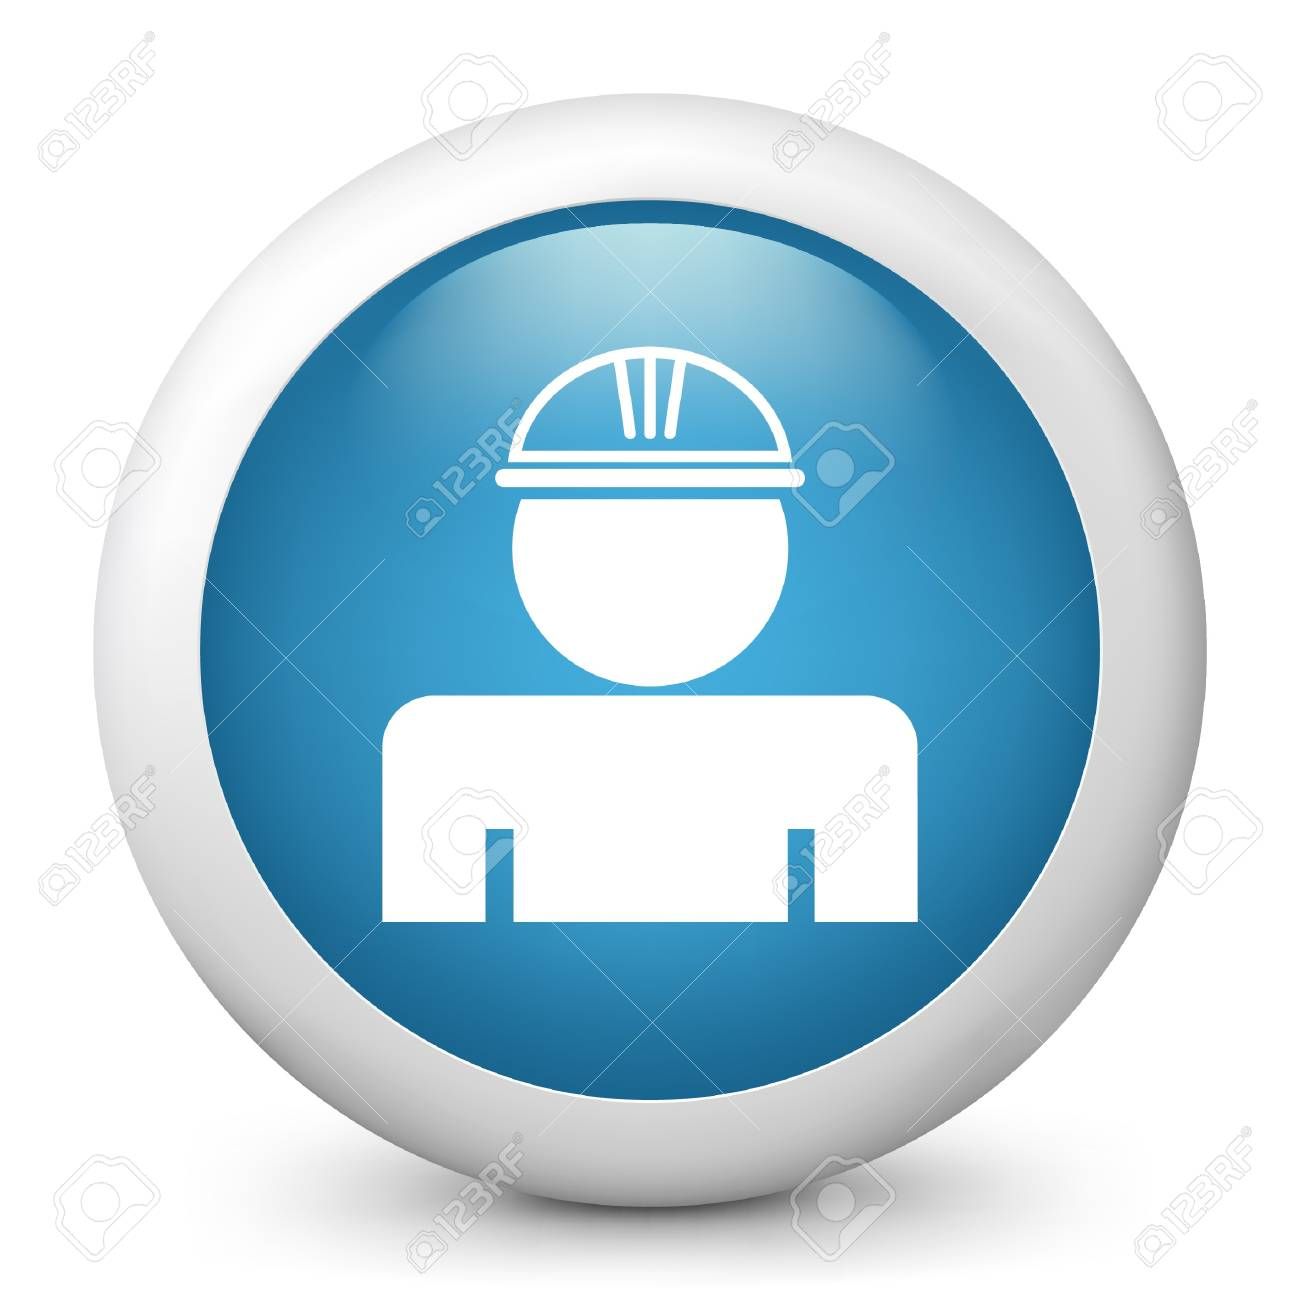 Vector illustration of blue glossy icon. - 17705165